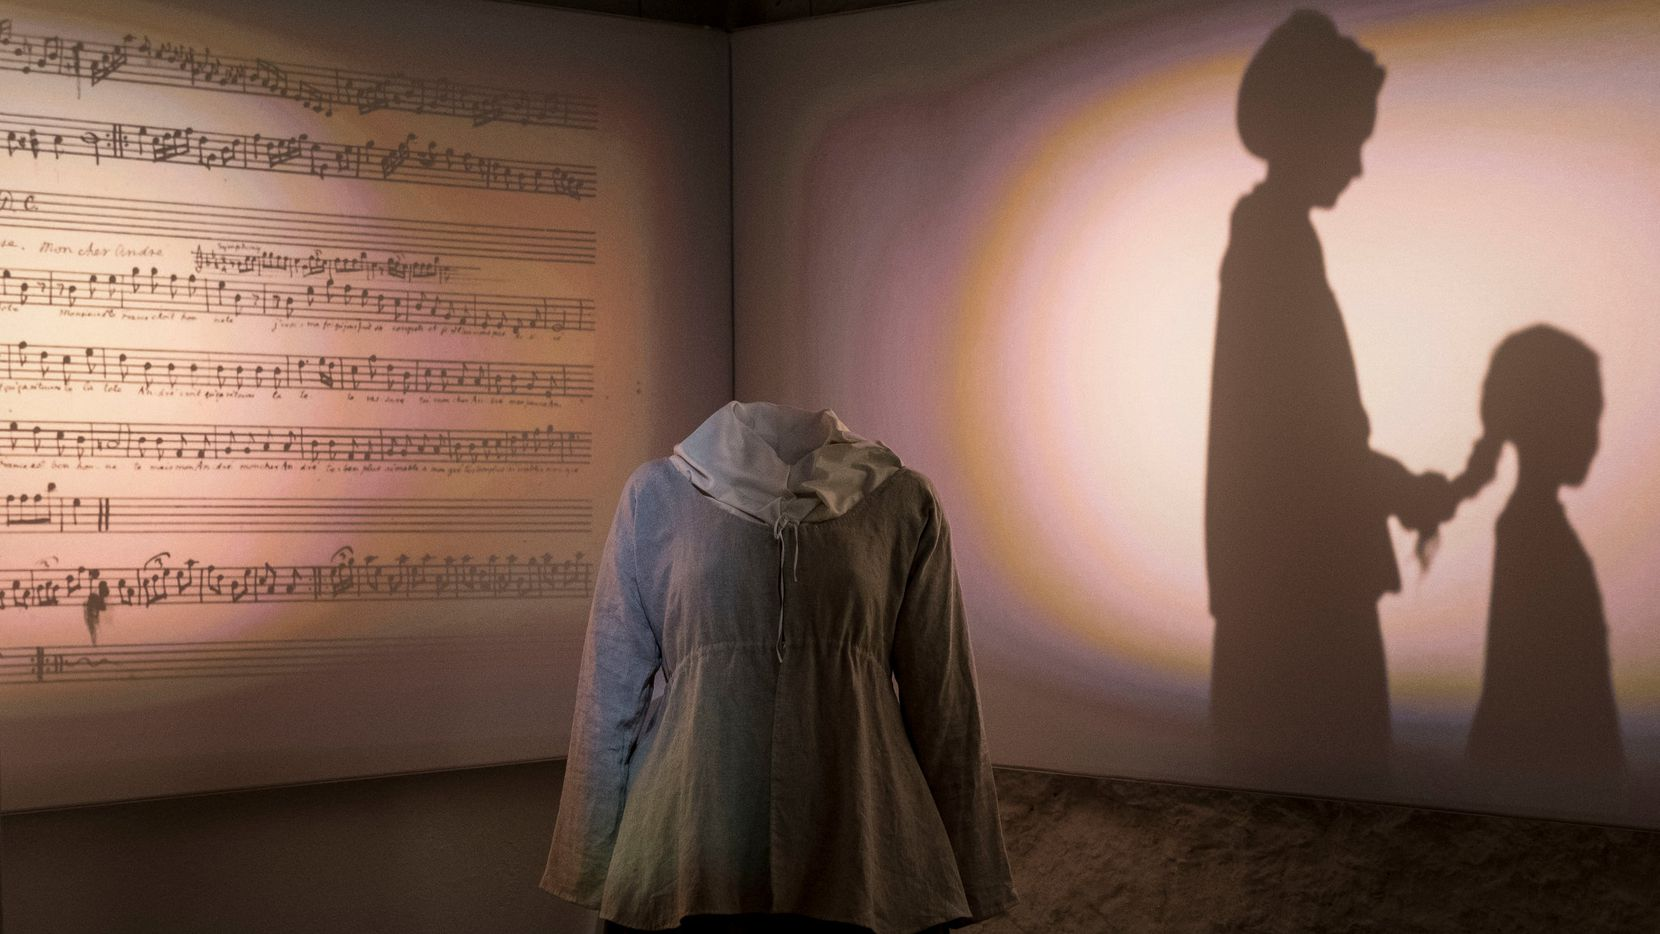 Dallas' exhibit will have a section that features Sally Hemings and her children.